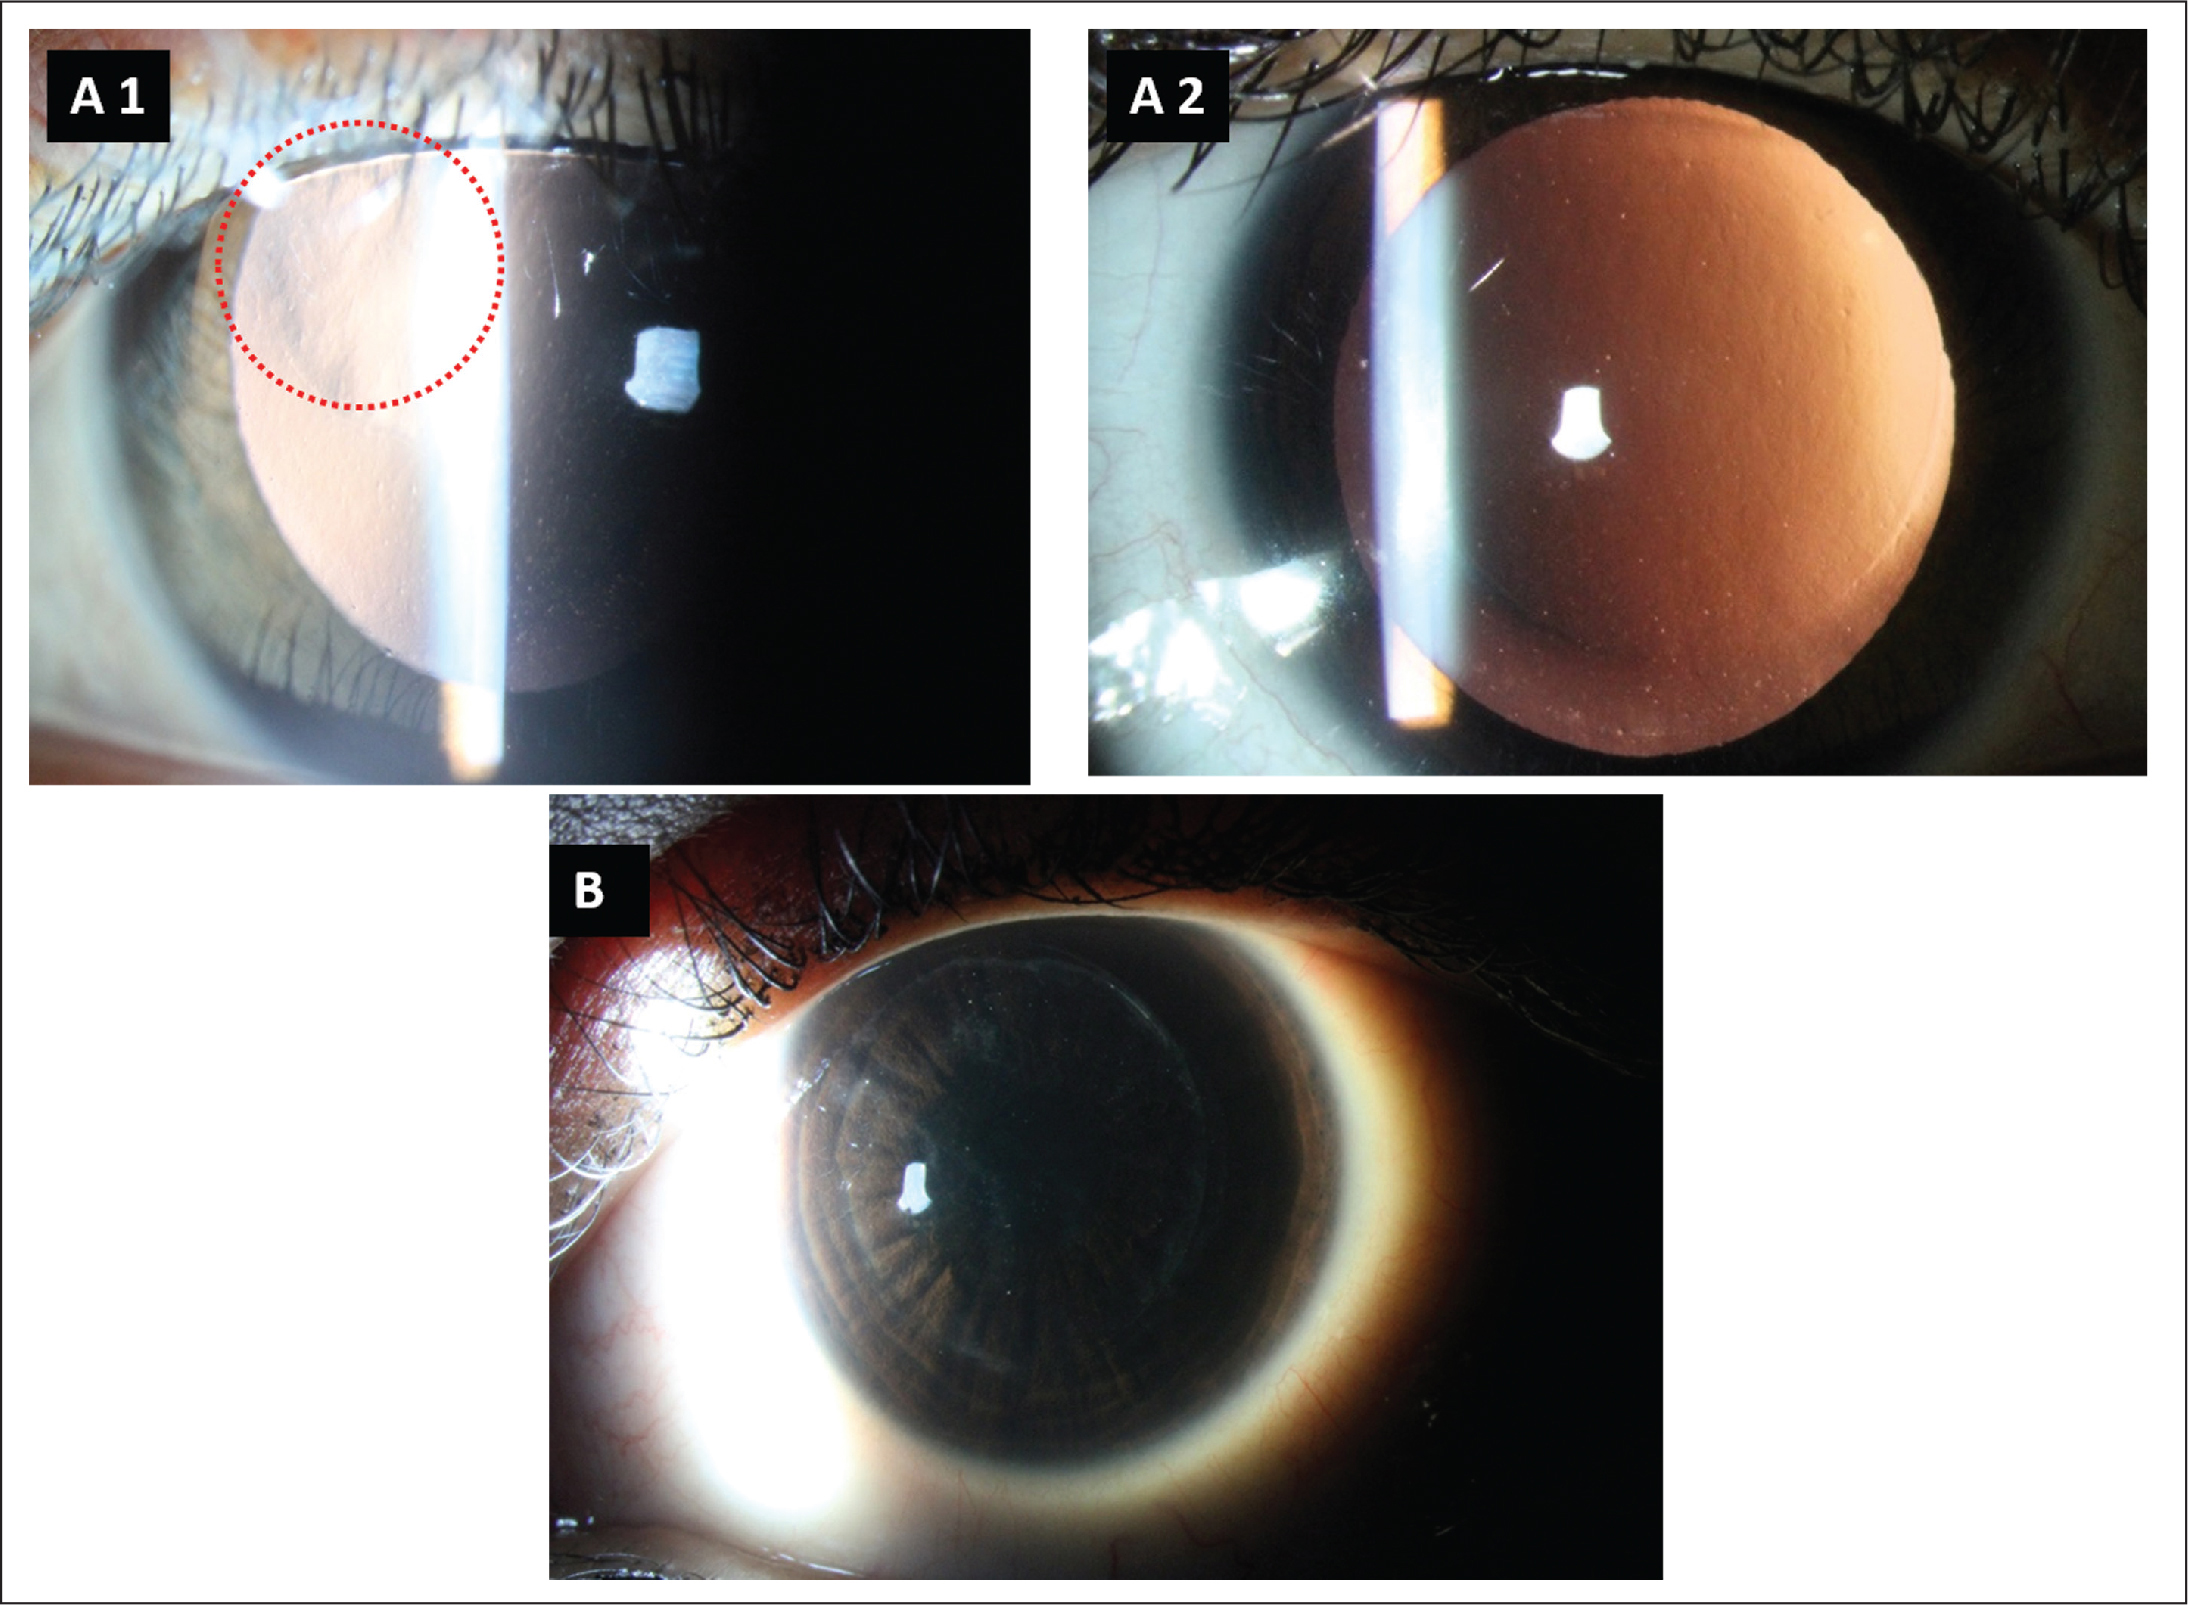 Clinical photographs of case 1 (A1) before repair surgery. The red circle highlights the area corresponding to the black patch, leading to irregularity in the corneal tissue. (A2) Post-repair surgery clinical photograph shows regularization of the corneal contour. (B) Case 2 after repair surgery shows mild diffuse interface scarring, sparing the visual axis.